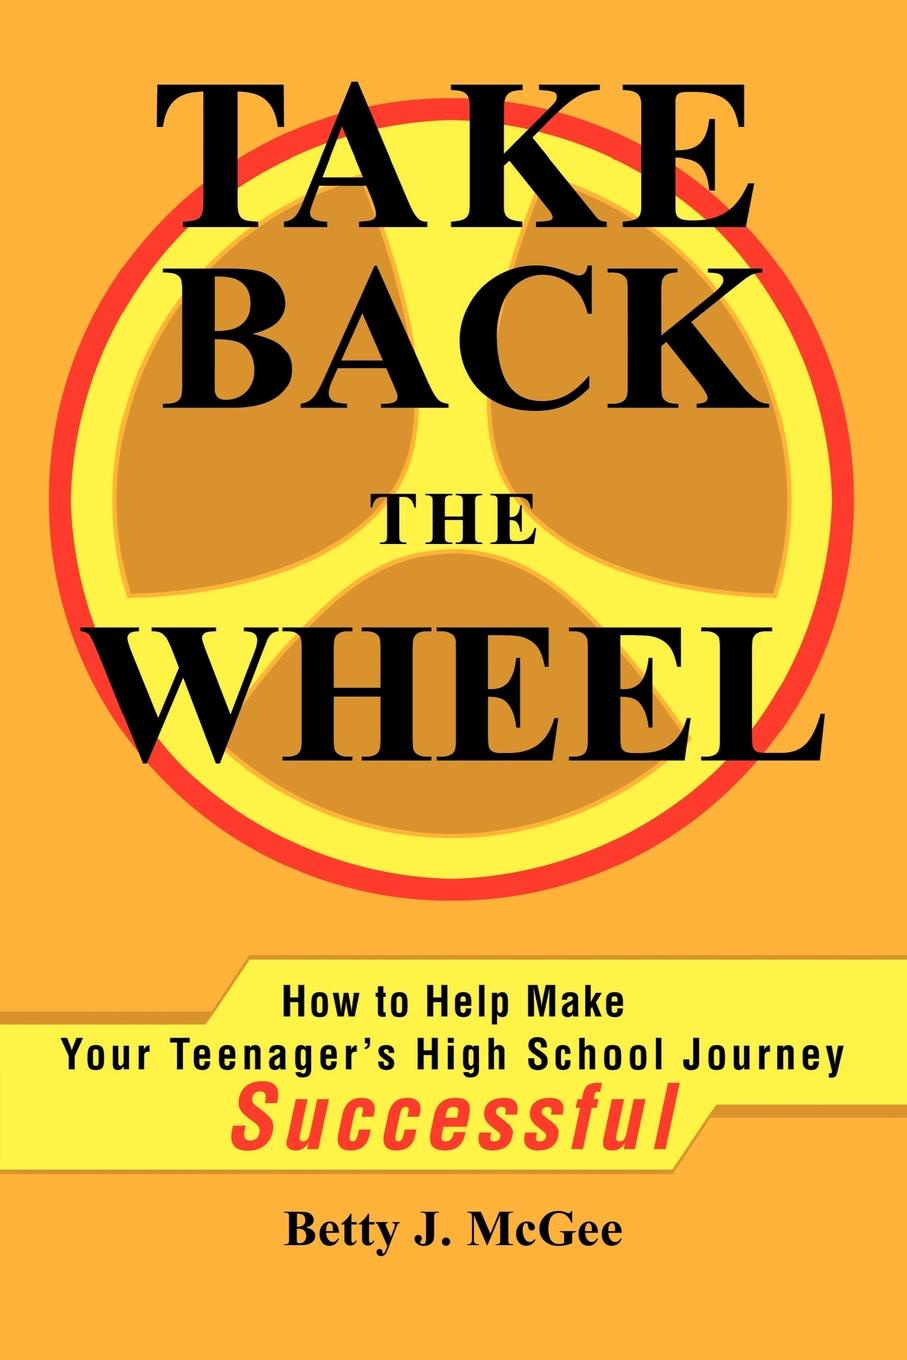 Betty McGee Take Back the Wheel. How to Help Make Your Teenager